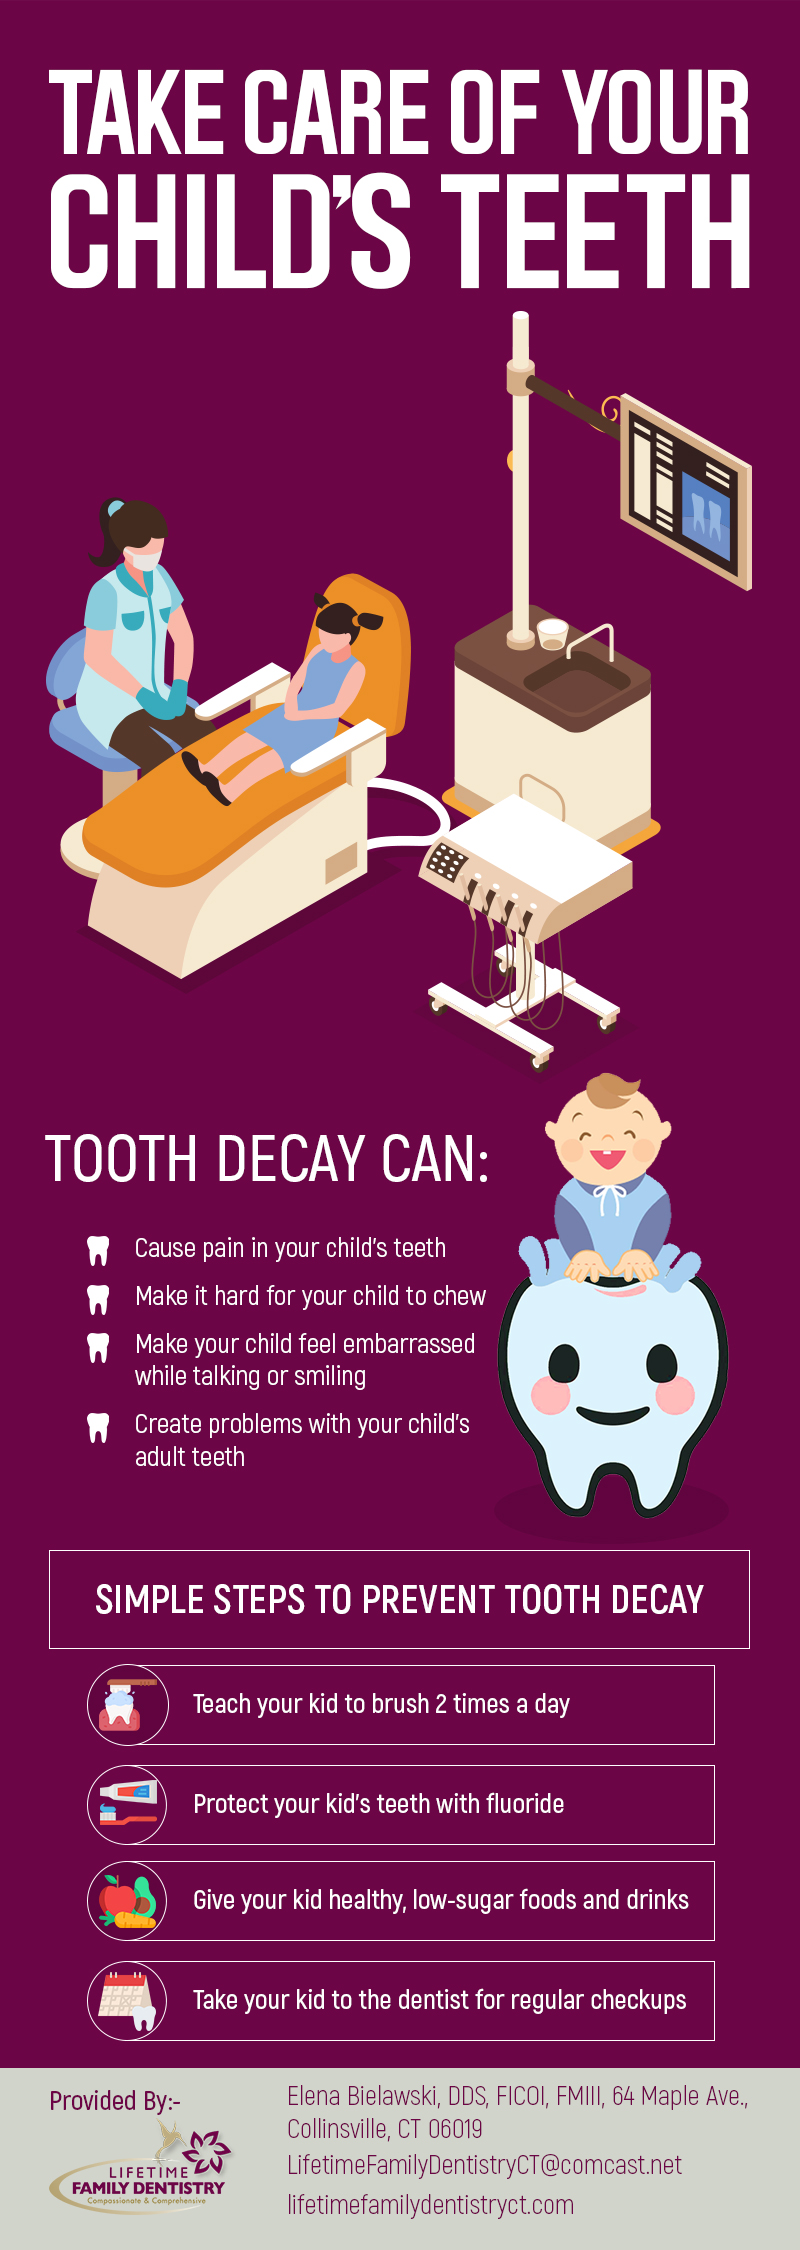 Choose Lifetime Family Dentistry for Quality Children's Dentistry in Collinsville, CT